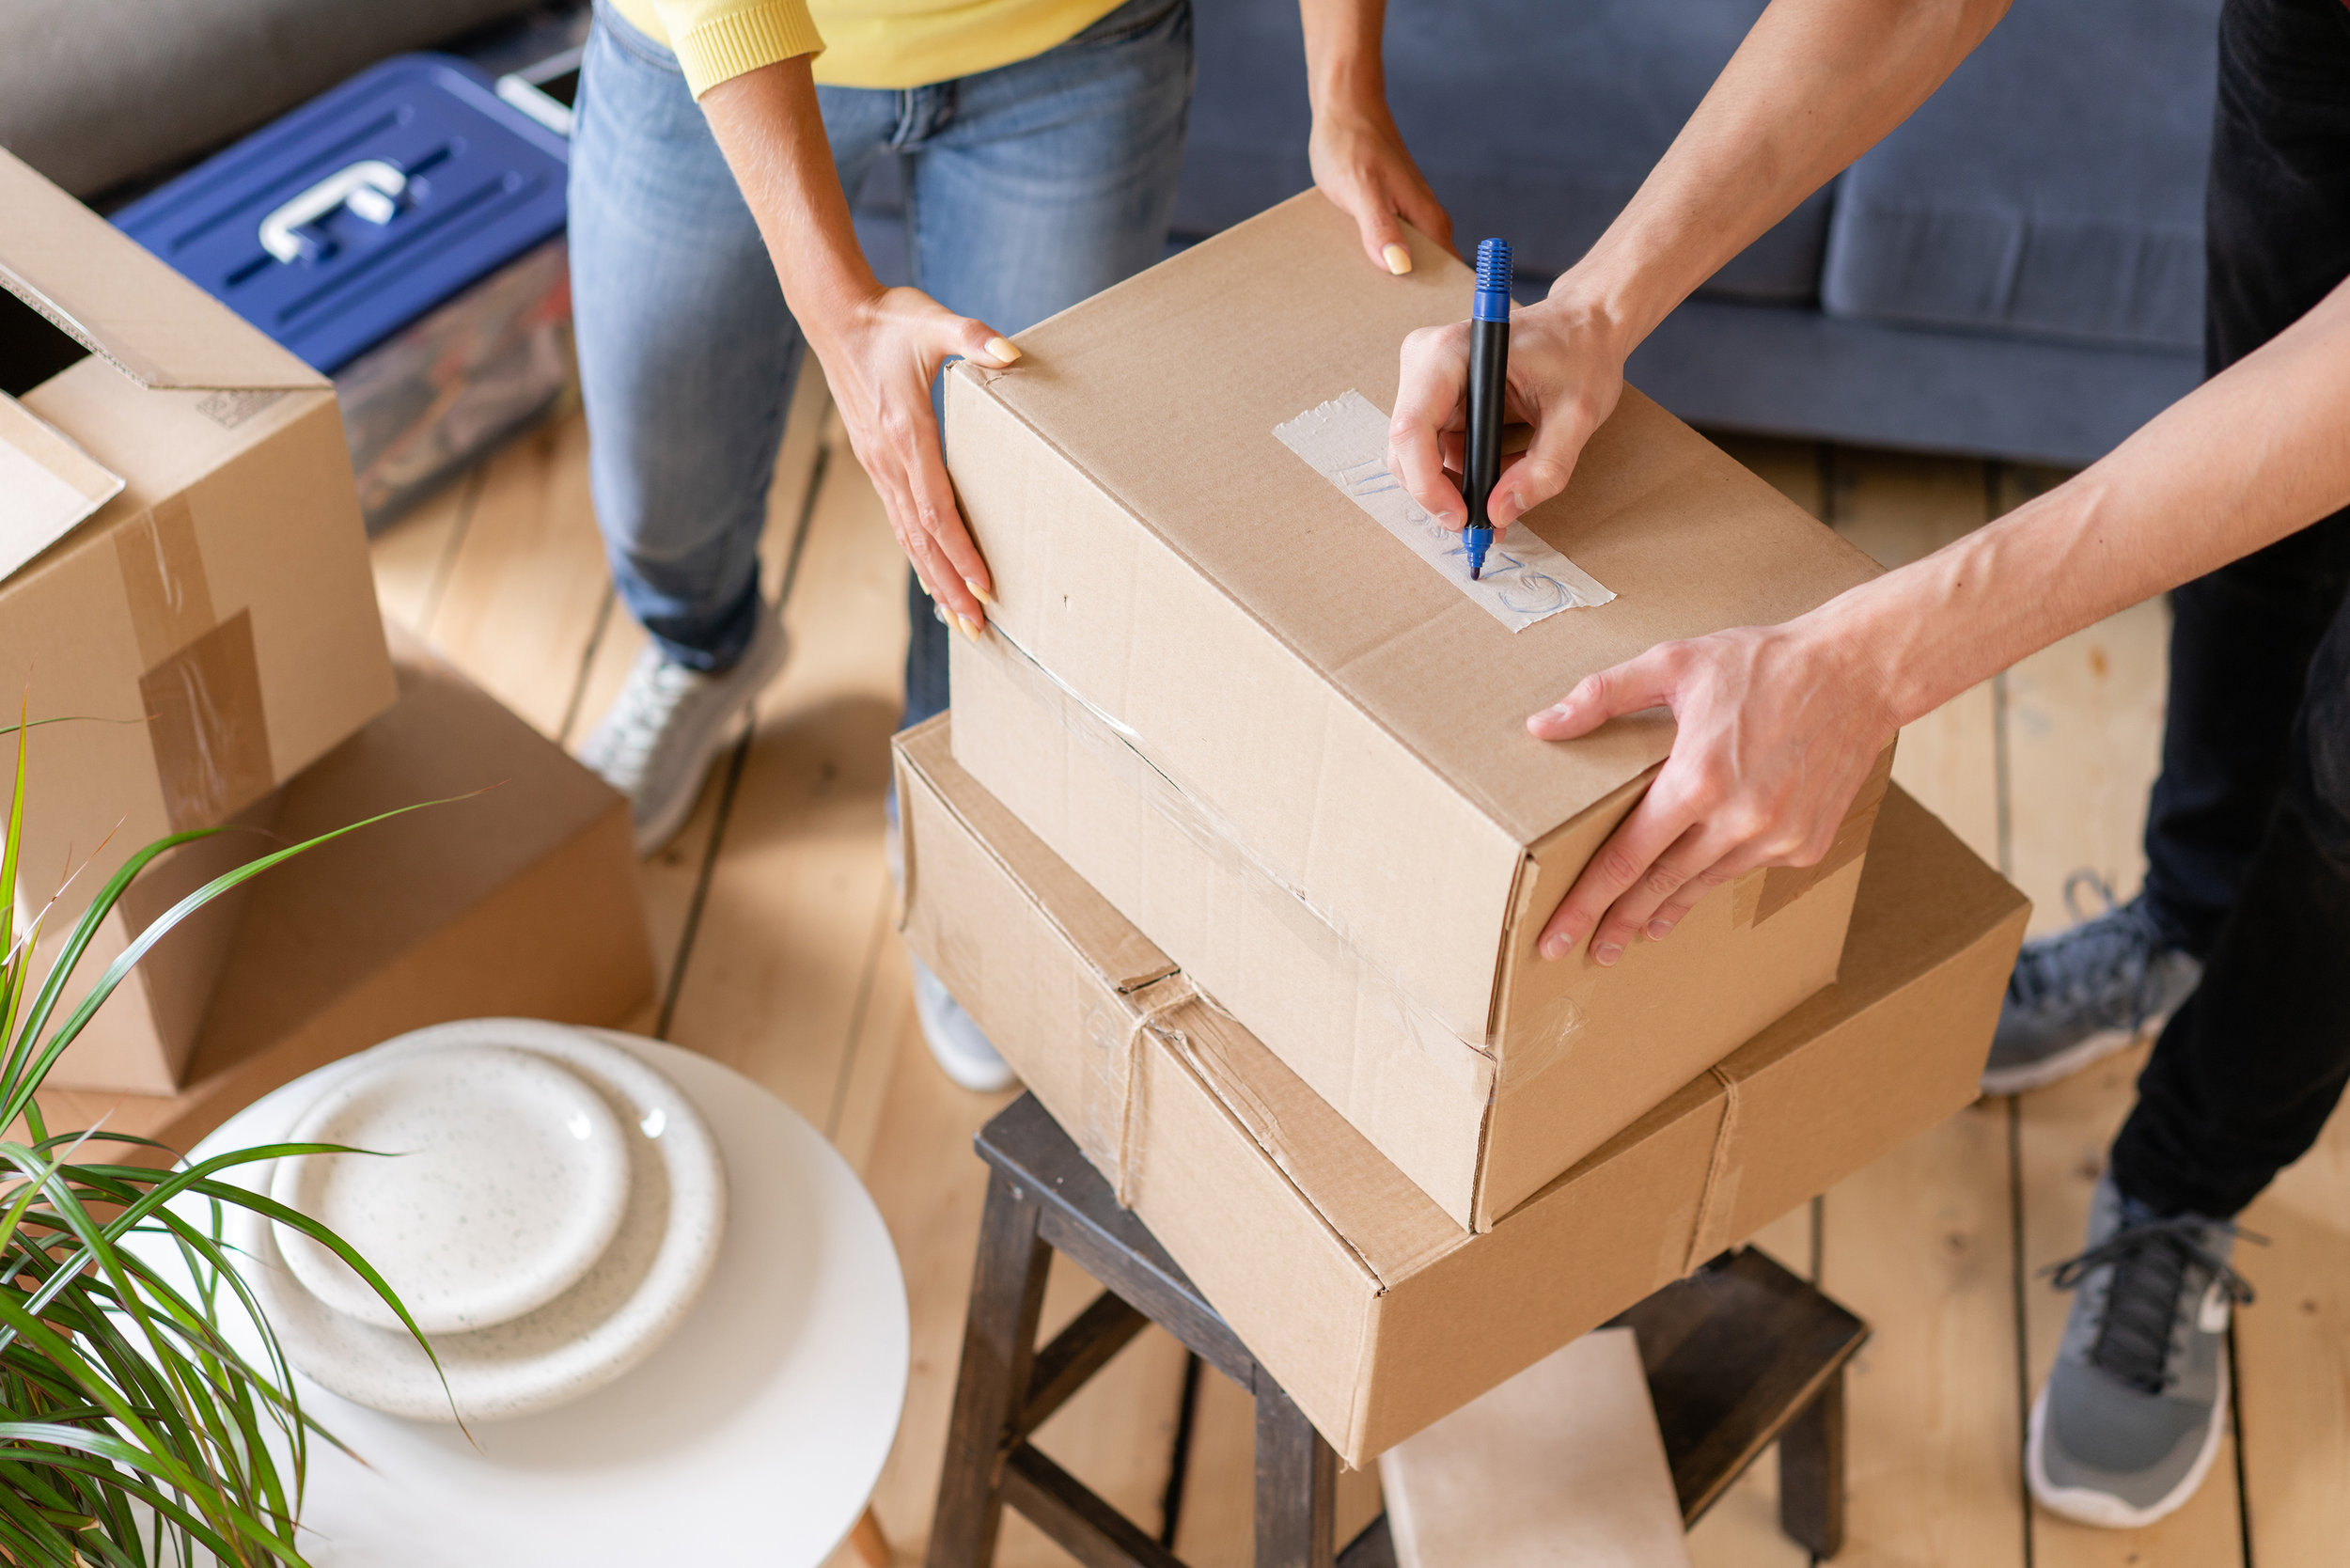 Organizing, sorting, & downsizing your move - After living in a home for several years there are many special items you''ll want to move with you. We will help you identify those things first and work with you on deciding what to do with everything else.